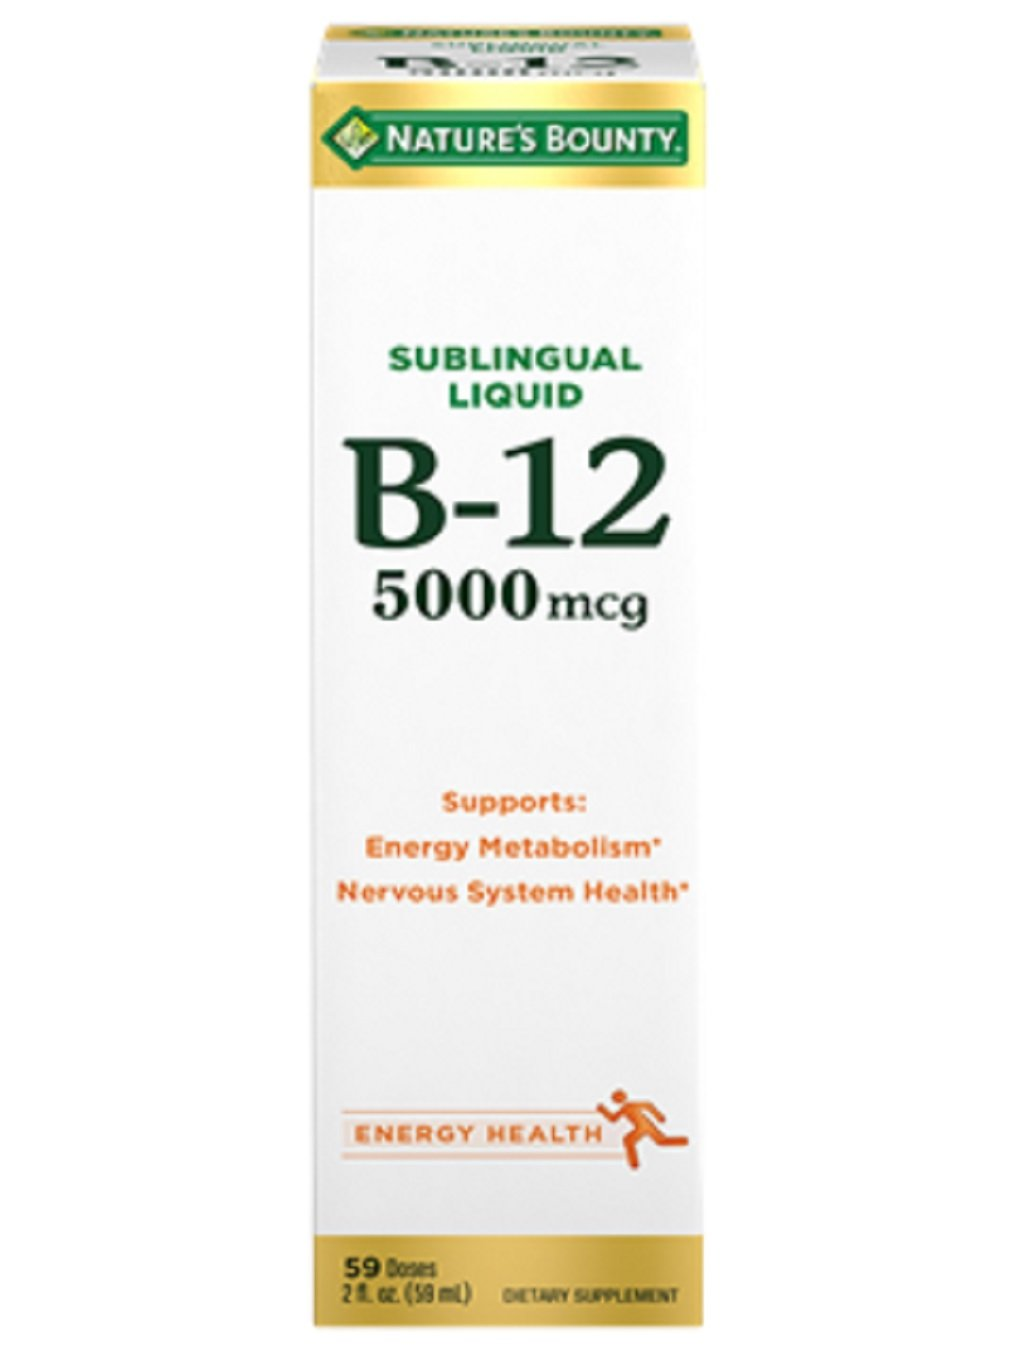 Nature's Bounty, Super Strength B-12, 5000mcg, 2 Oz (Pack of 2) by Nature's Bounty